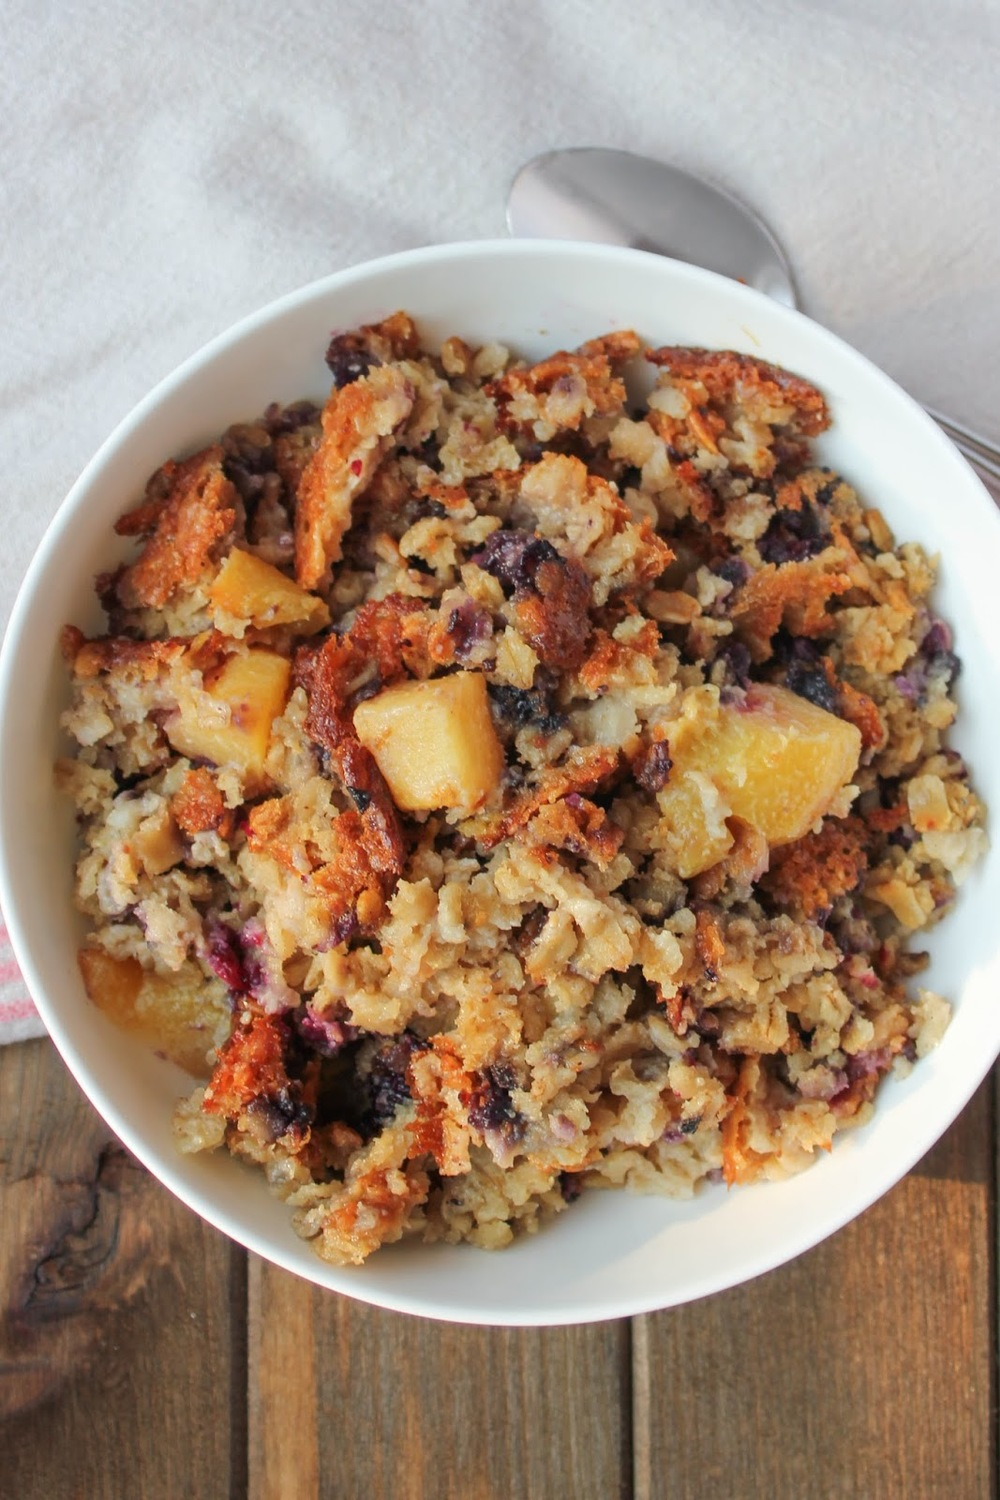 Baked oatmeal is the perfect breakfast for a cool fall morning! Love this dairy free recipe!